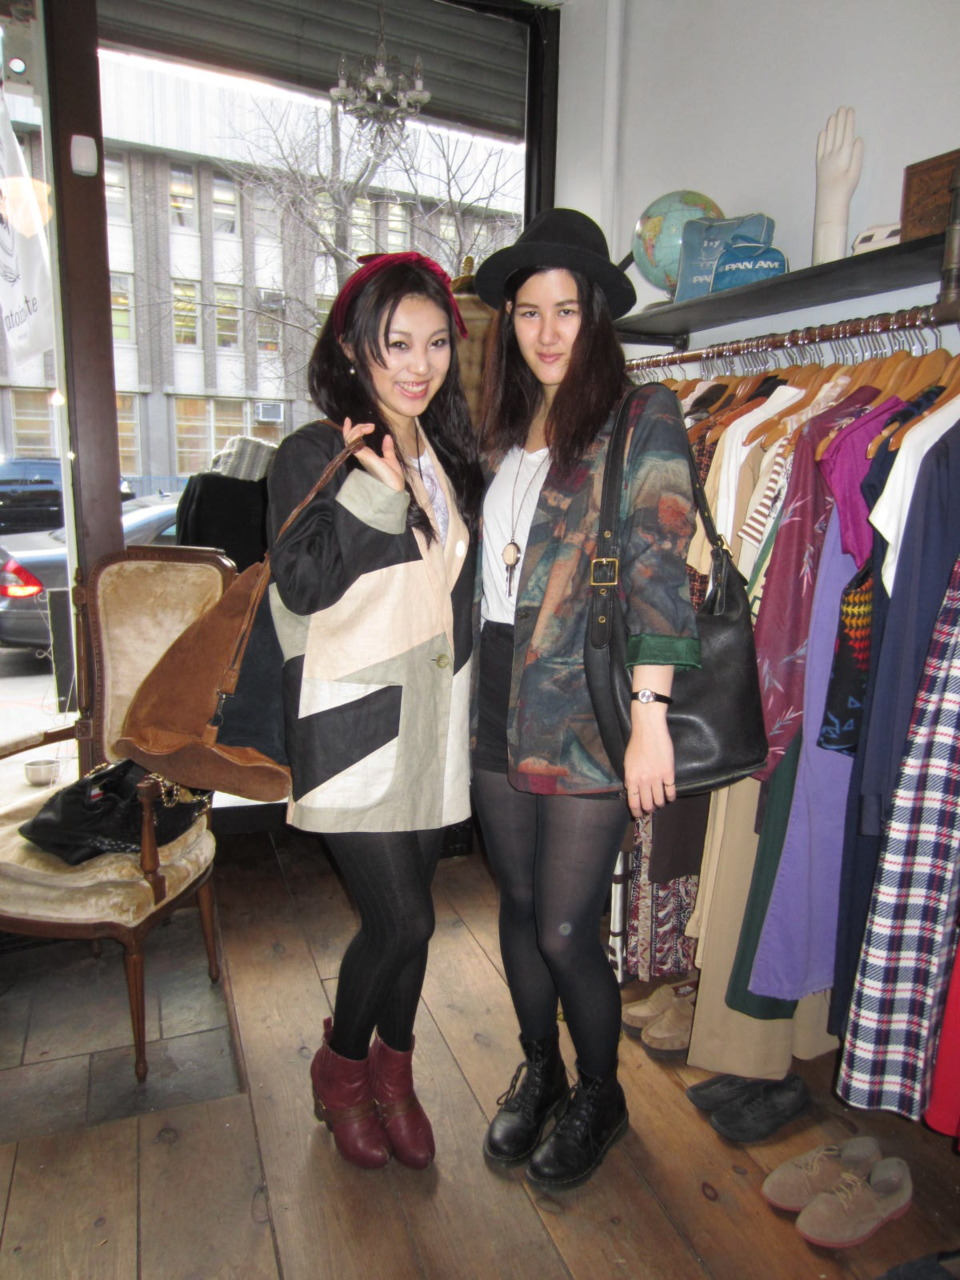 Natalie & Aimee just picked up these fabulous antoinette blazers as well as the vintage Coach Duffle bag